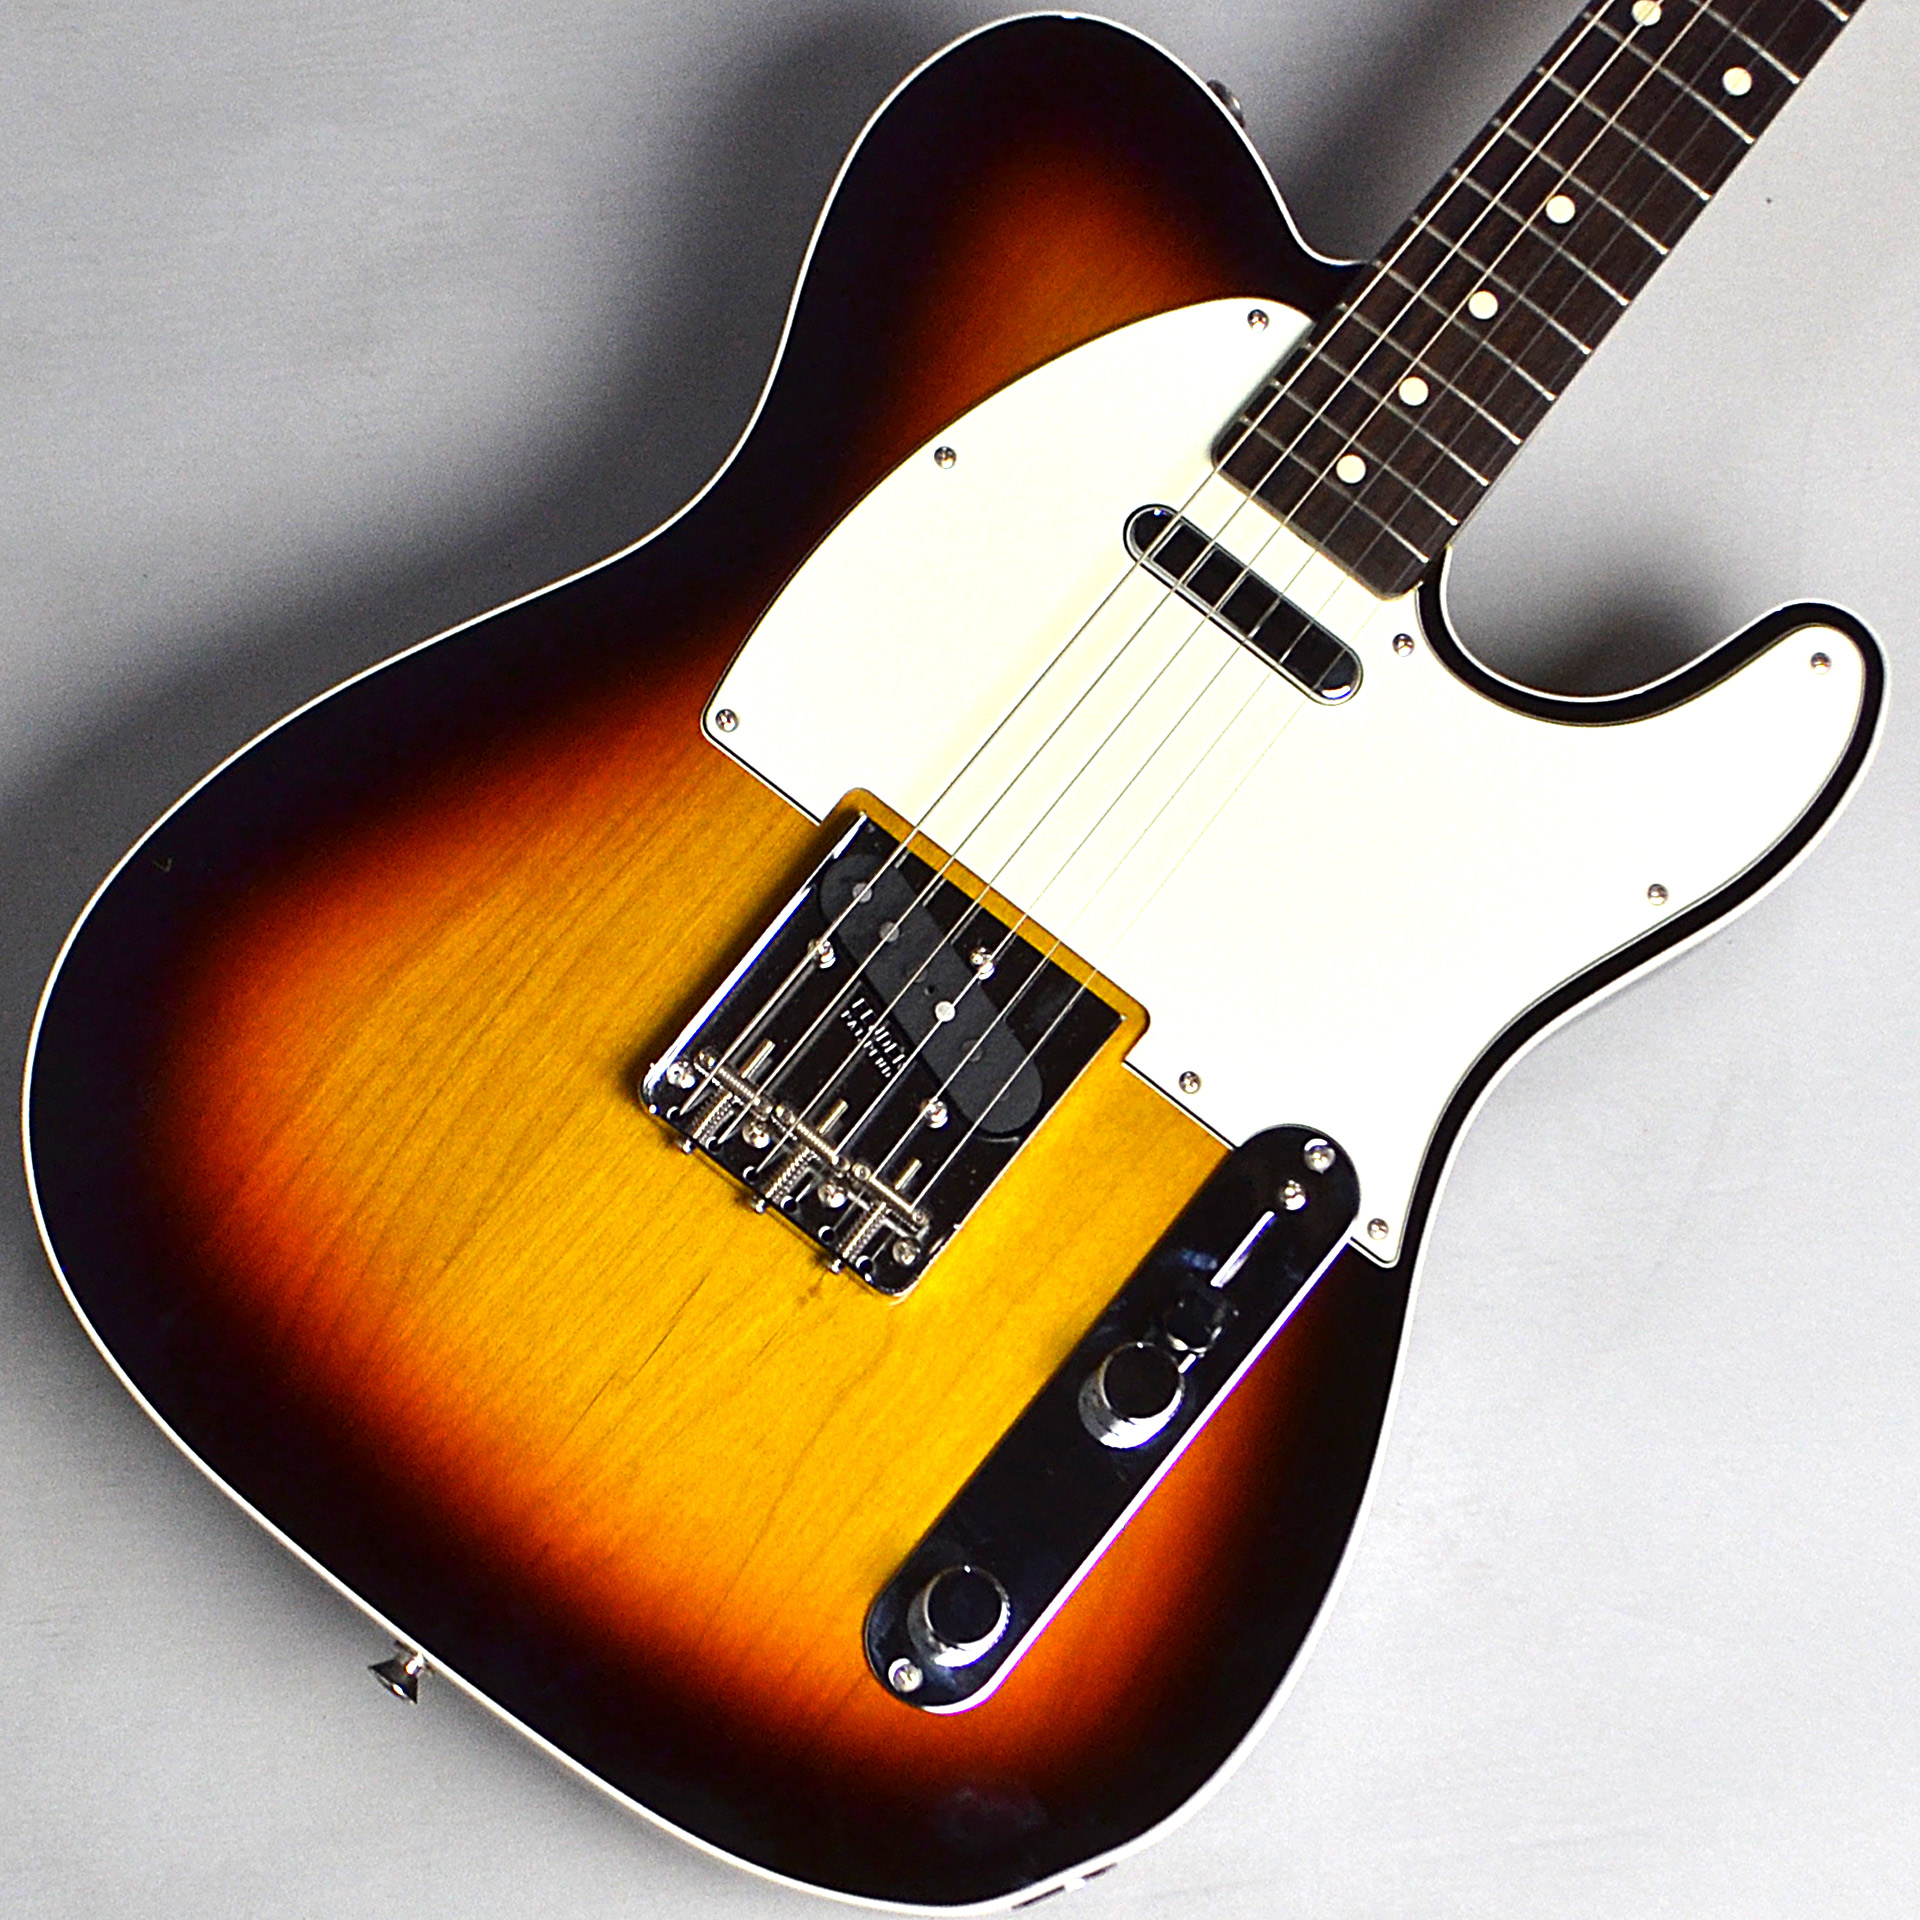 MADE IN JAPAN TRADITIONAL 60S TELECASTER CUSTOM